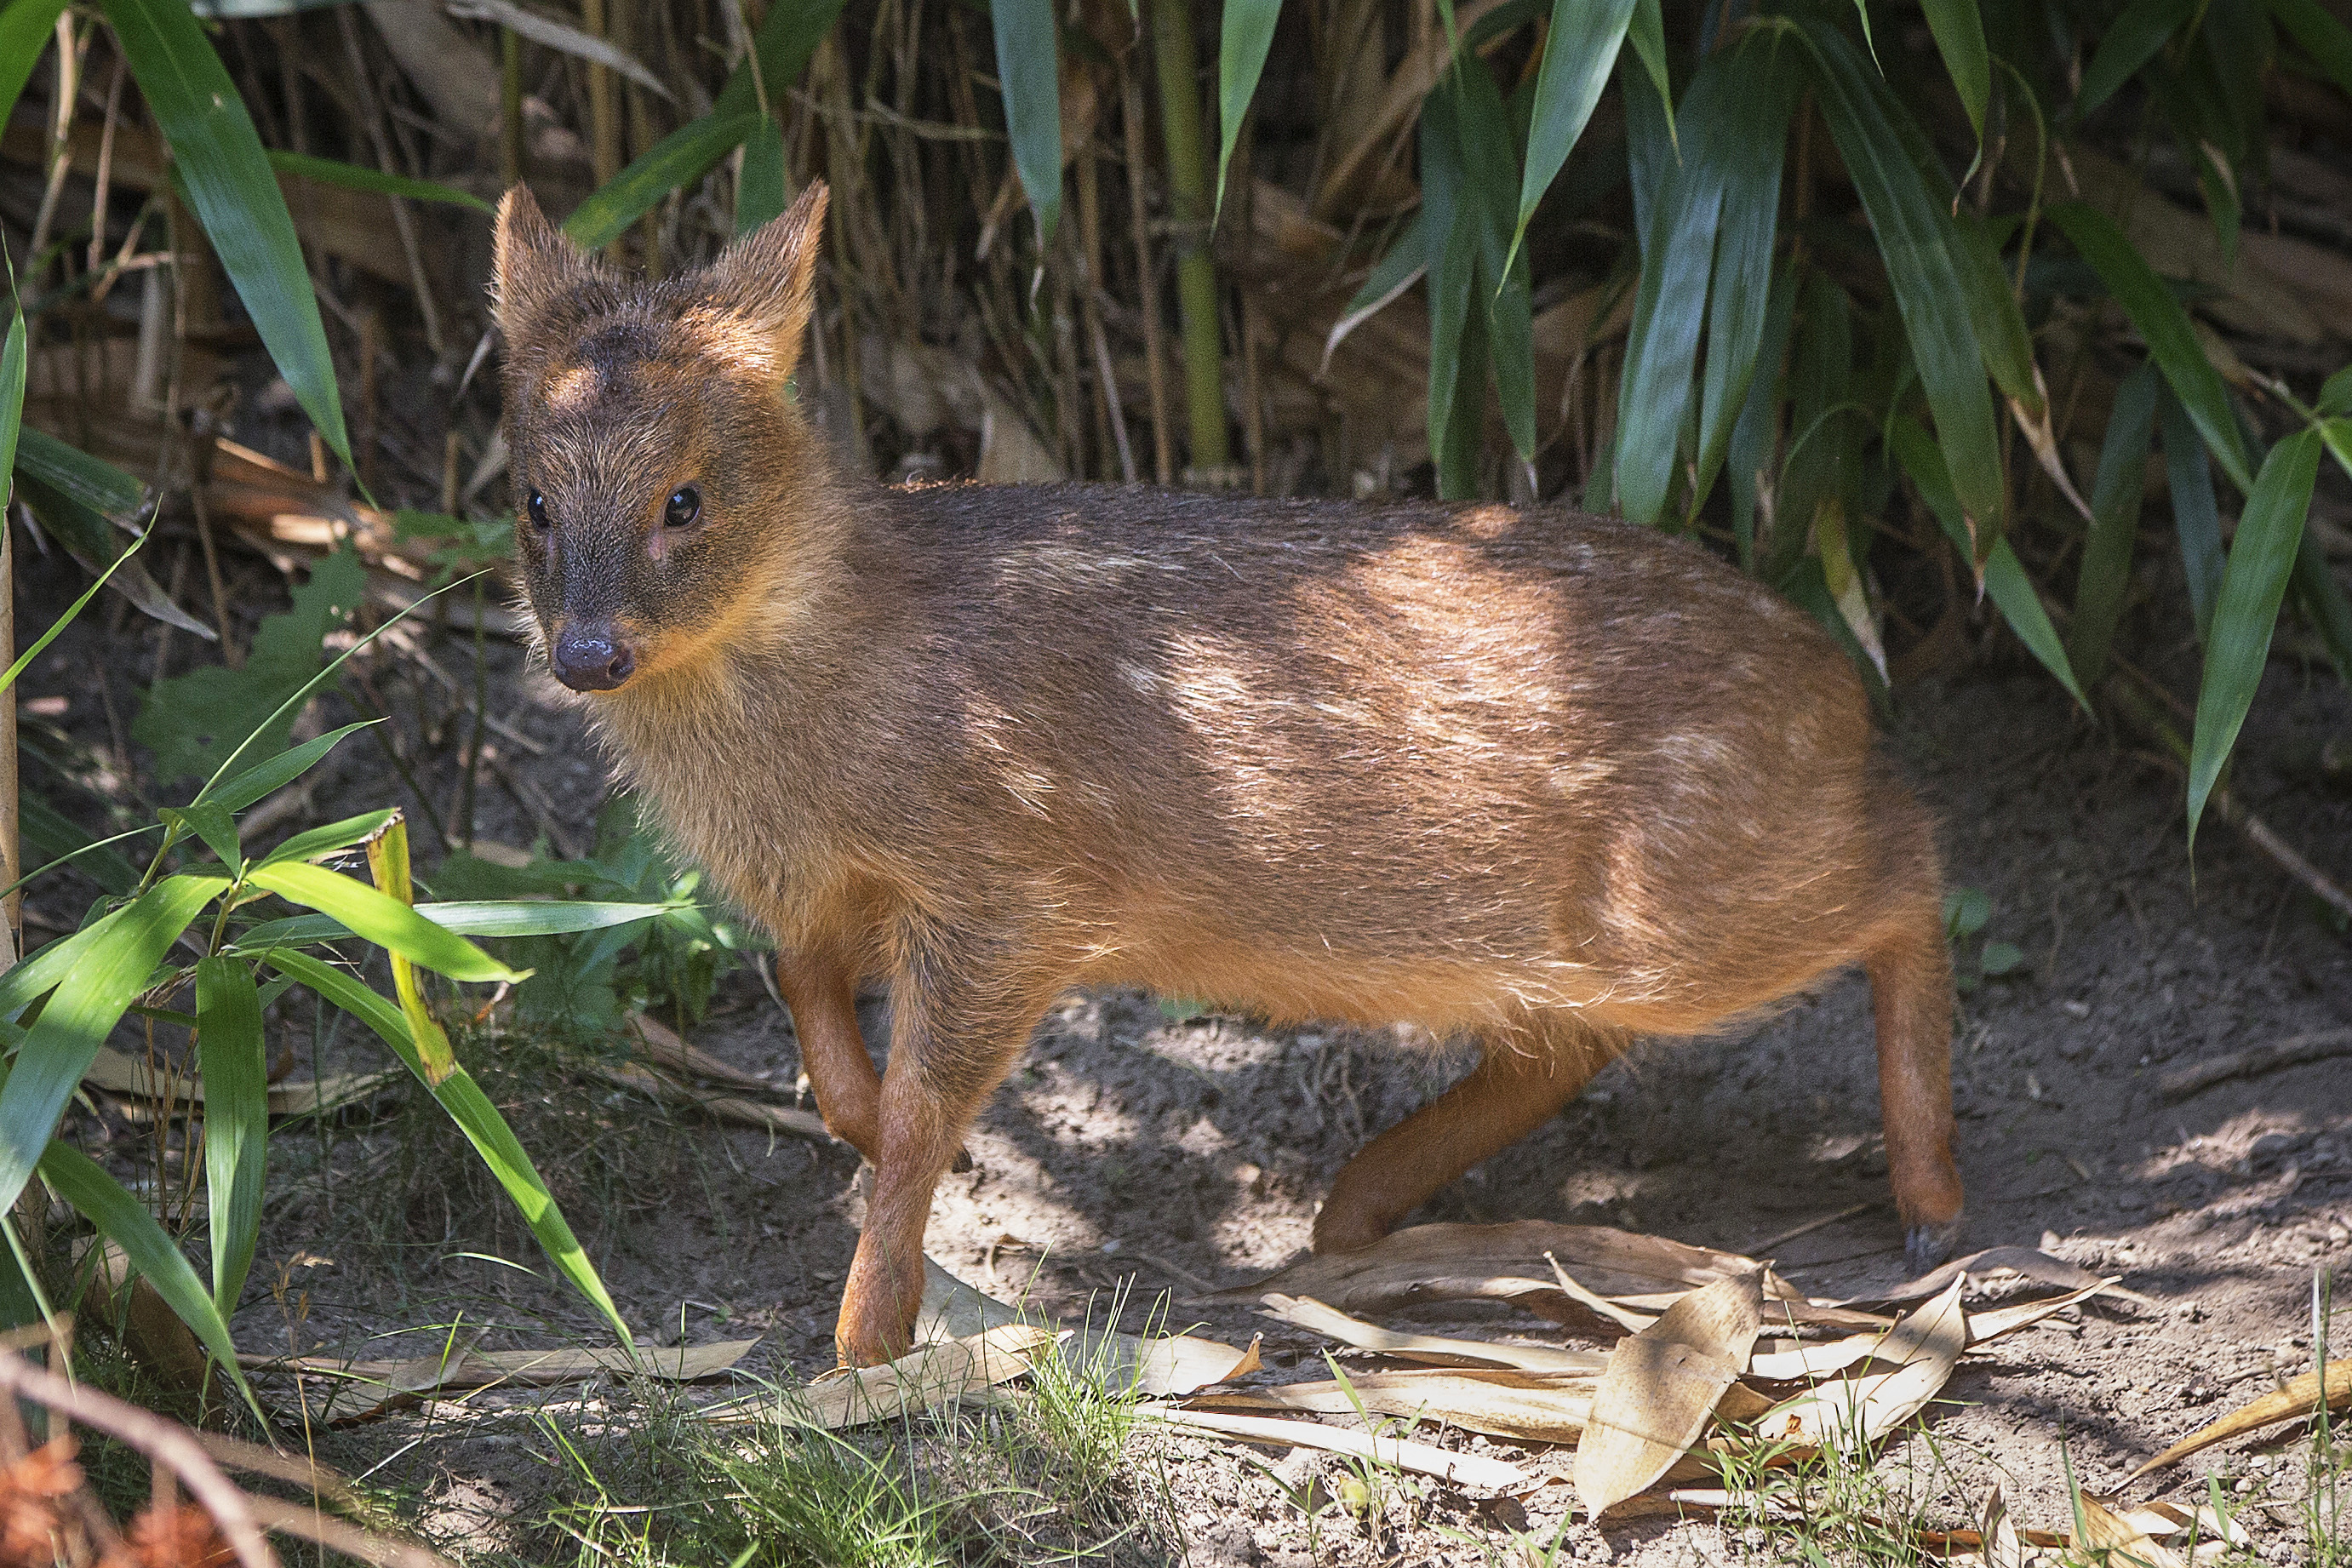 An endangered Southern Pudu, the world's smallest deer, is seen at a zoo in New York